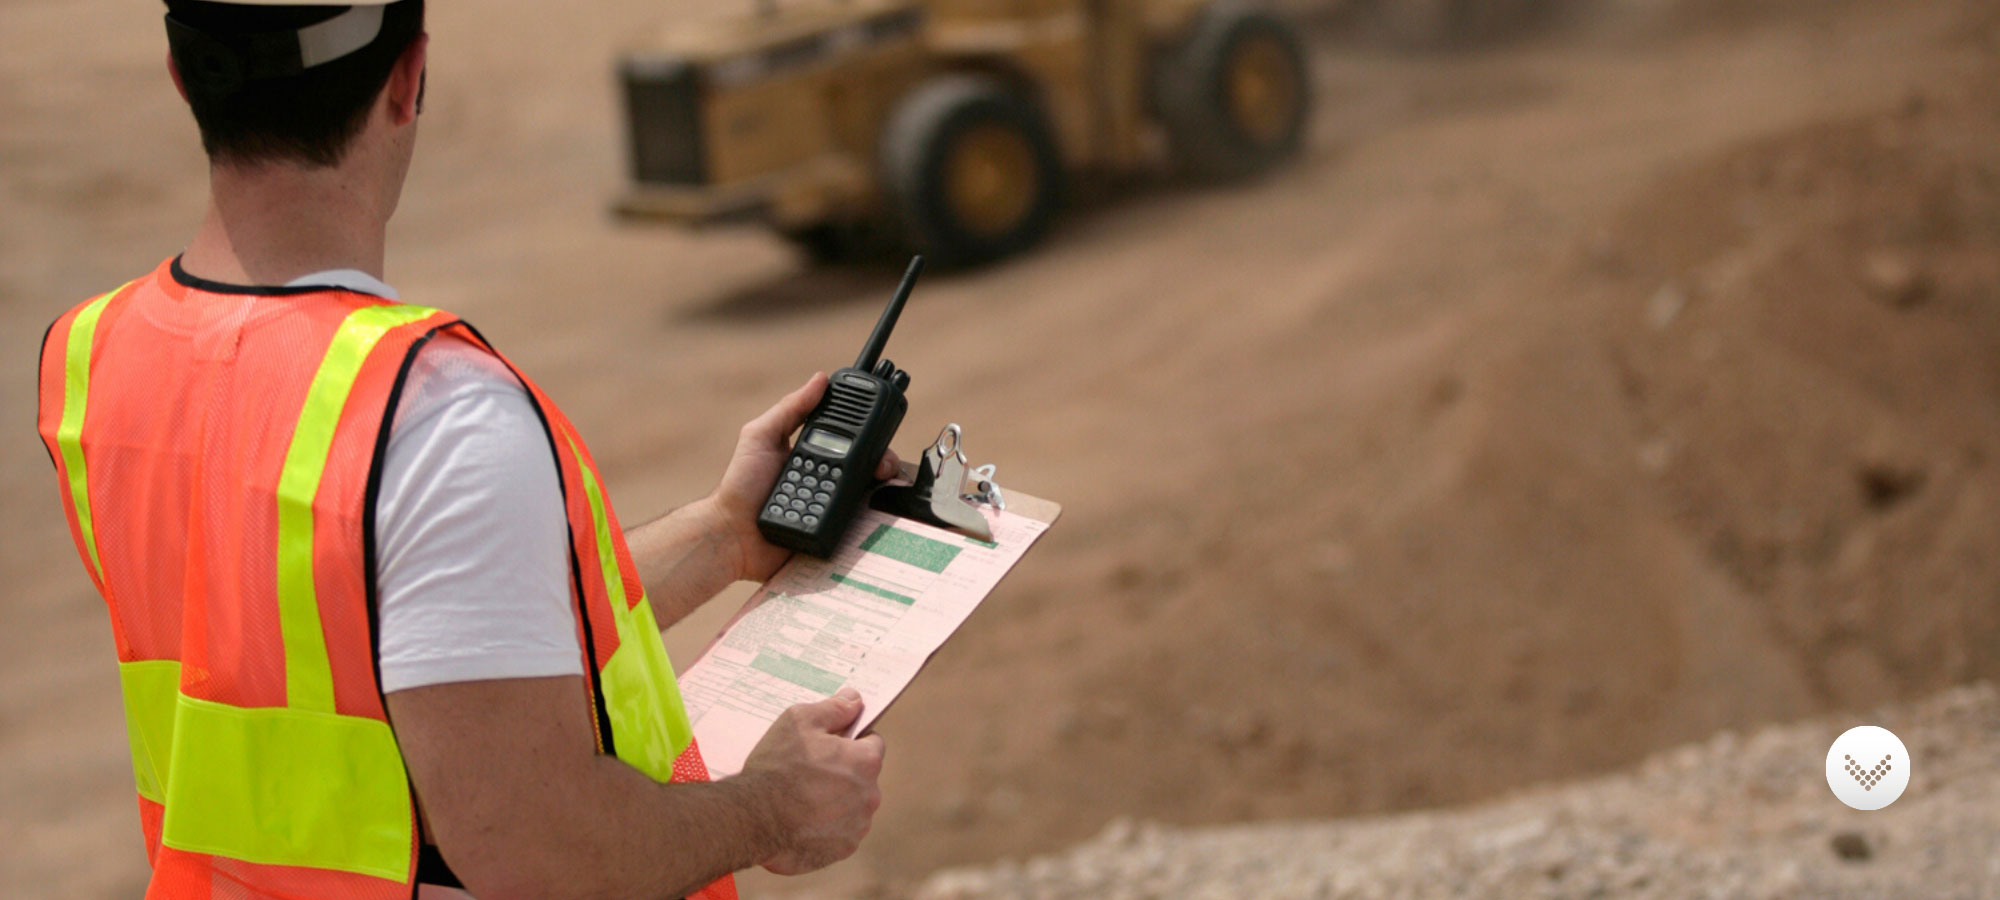 Construction worker holding clipboard and Kenwood two-way radio on dirt construction site with equipment in the background.